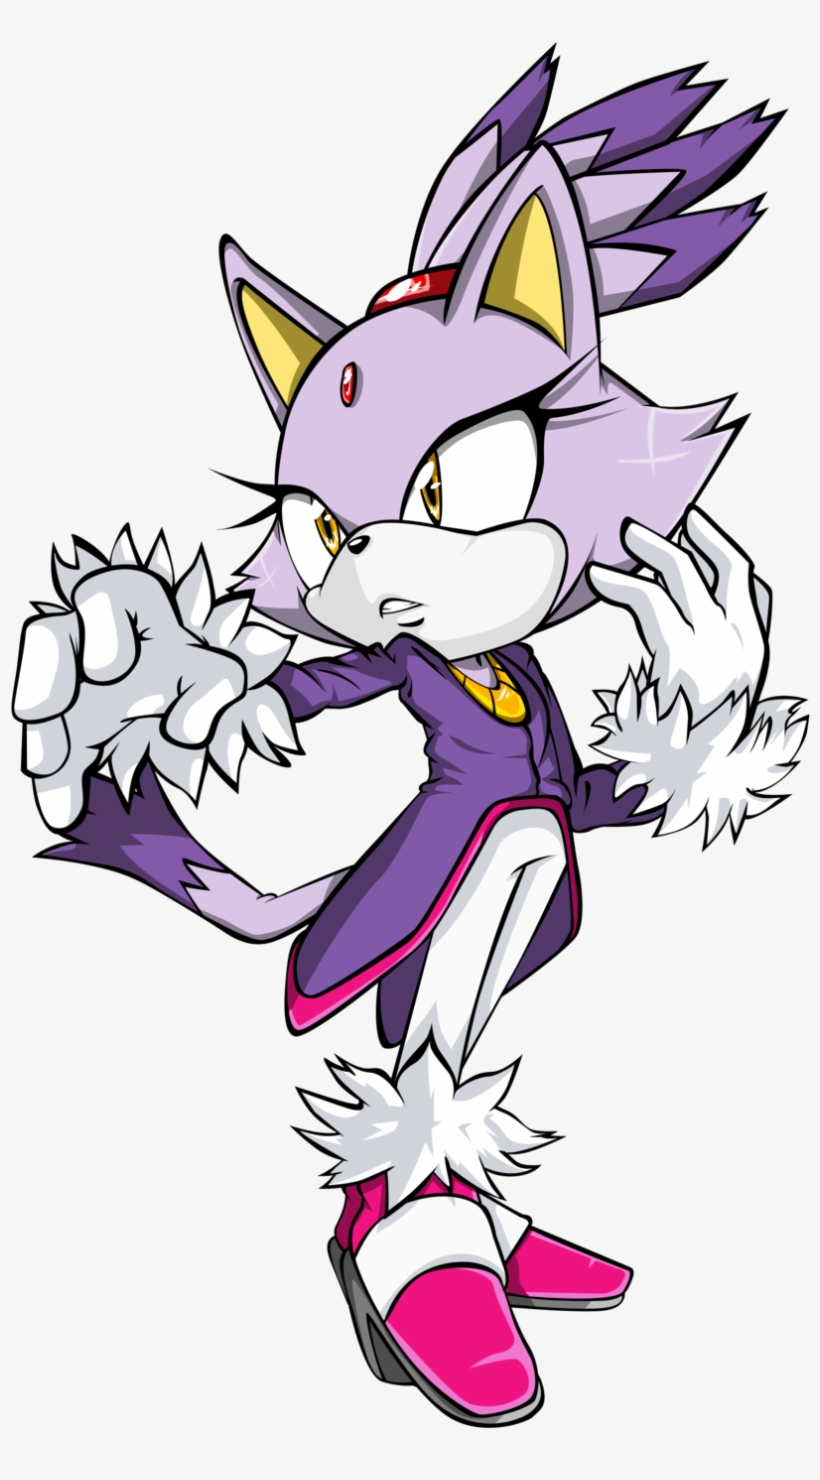 Cat Sonic The Hedgehog Sonic Forces Drawing Yuko Omori - Blaze The Cat Transparent, transparent png #1491353